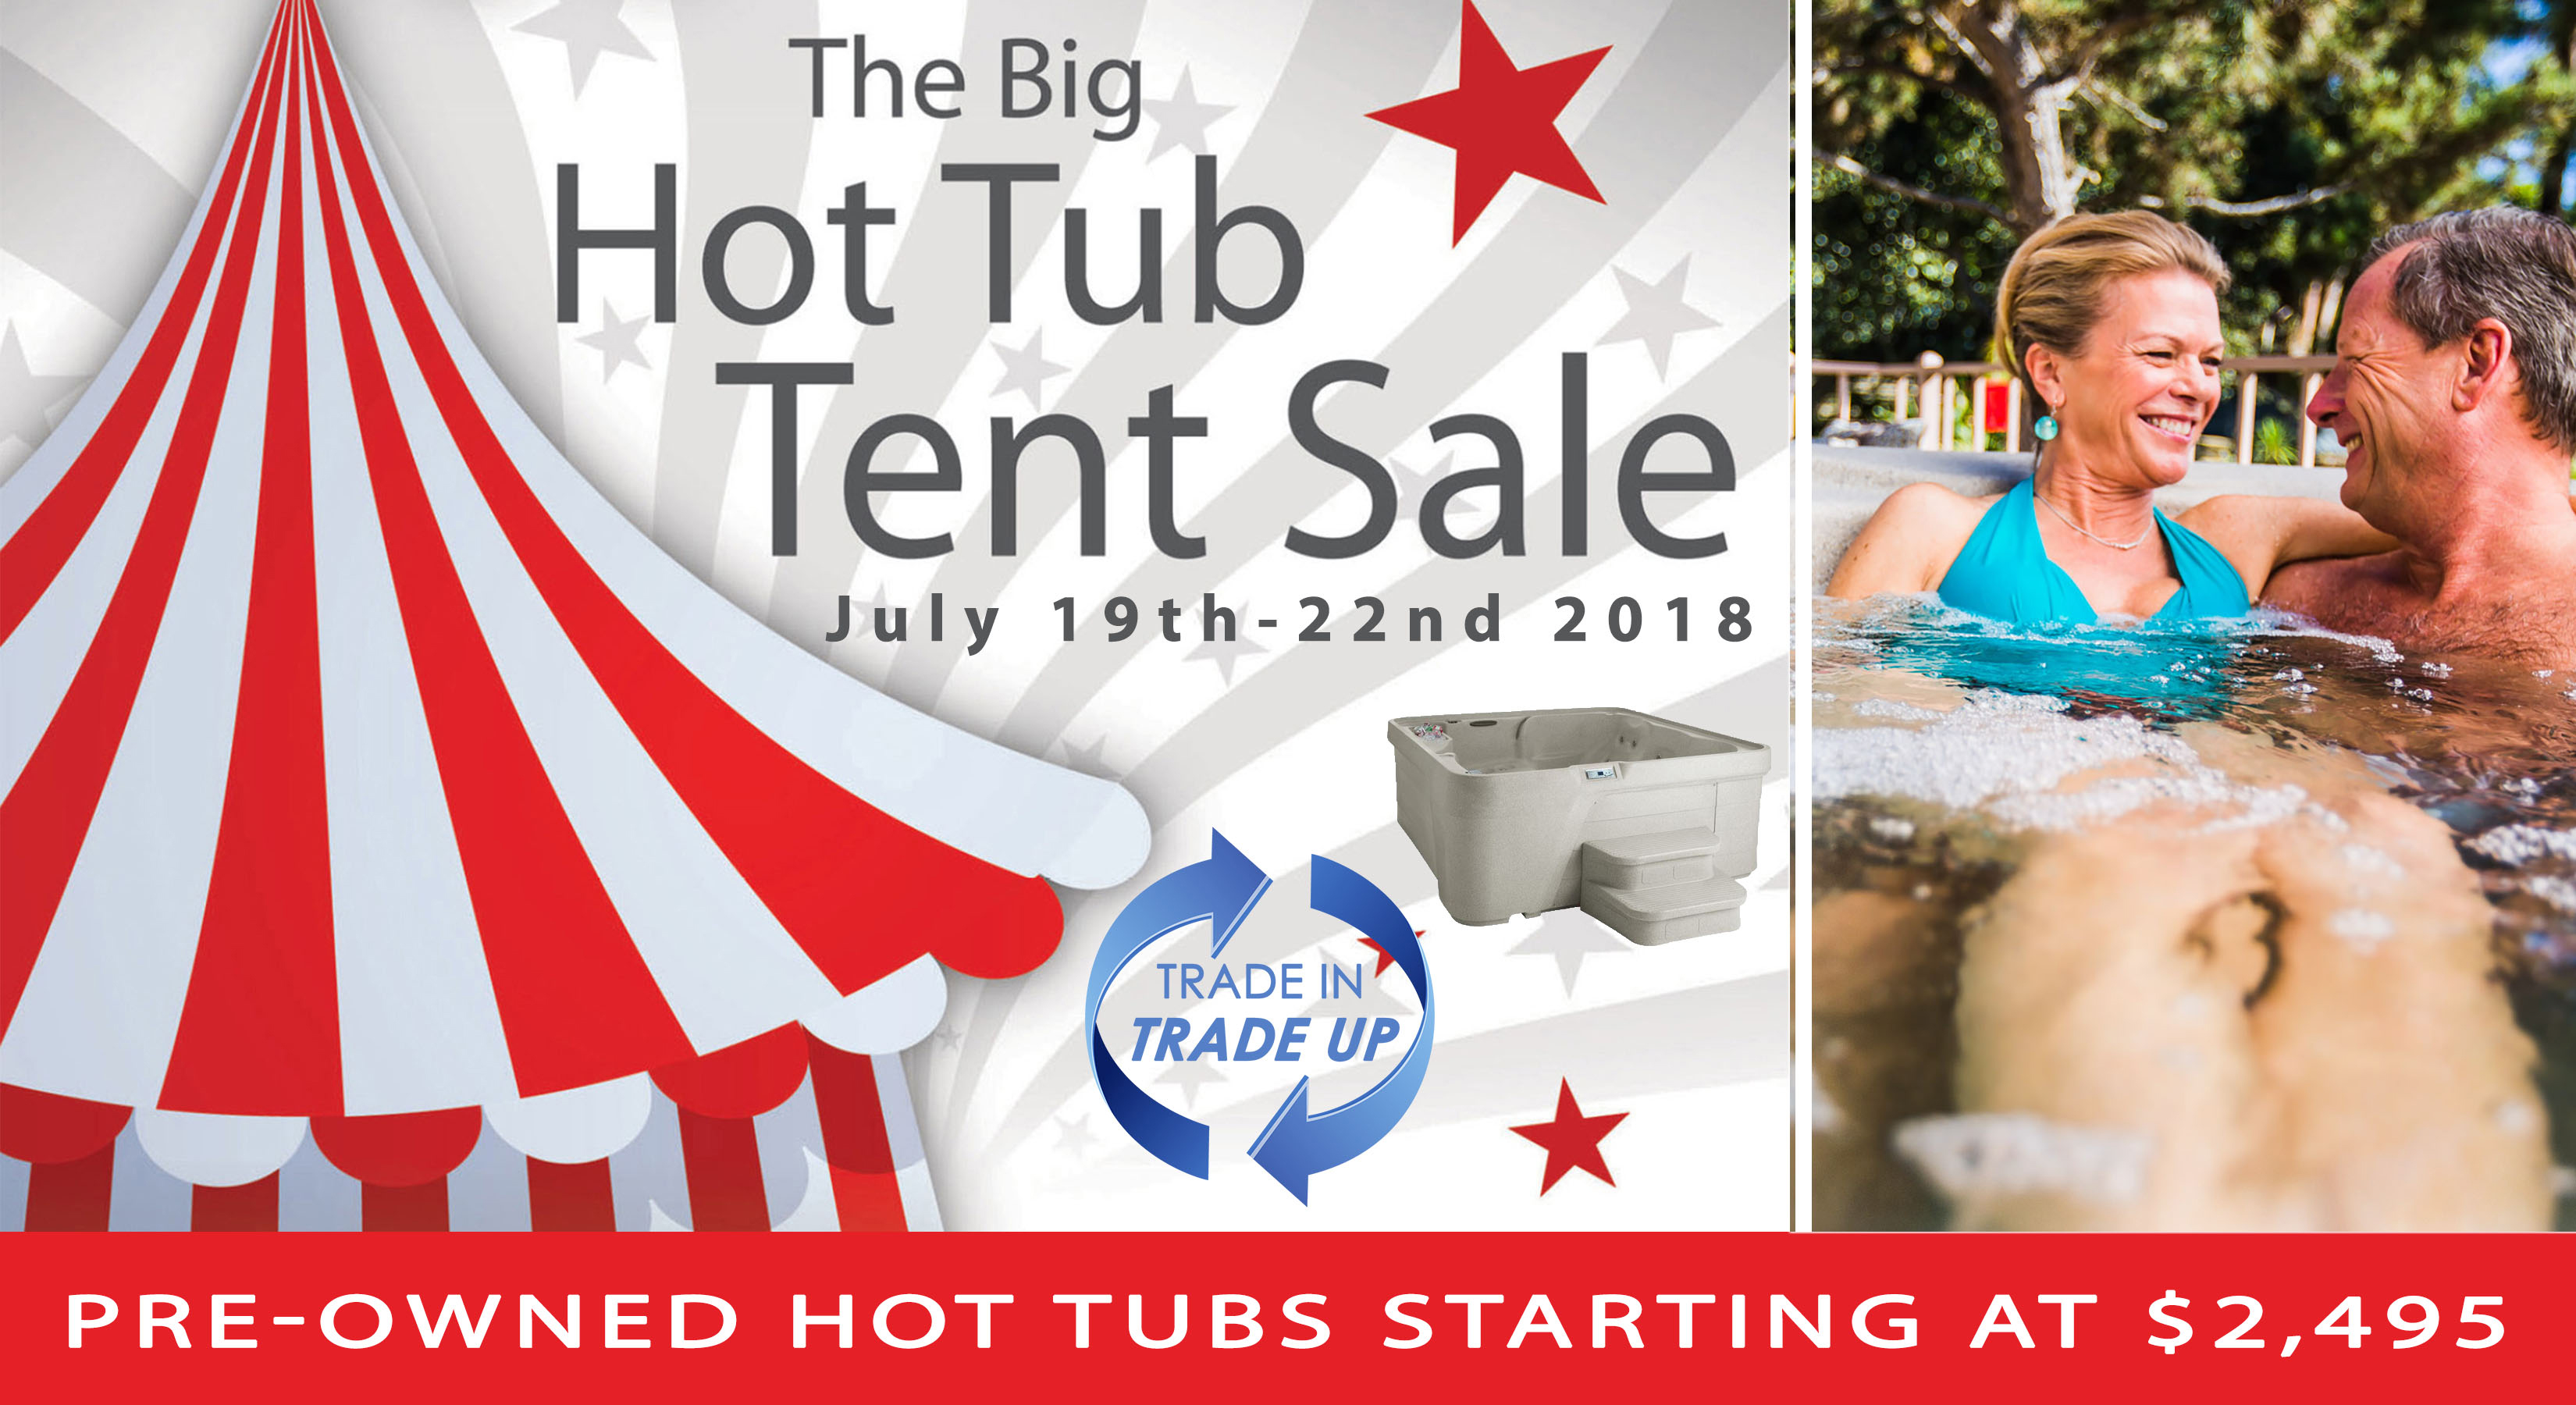 Tent Sale in White River Junction